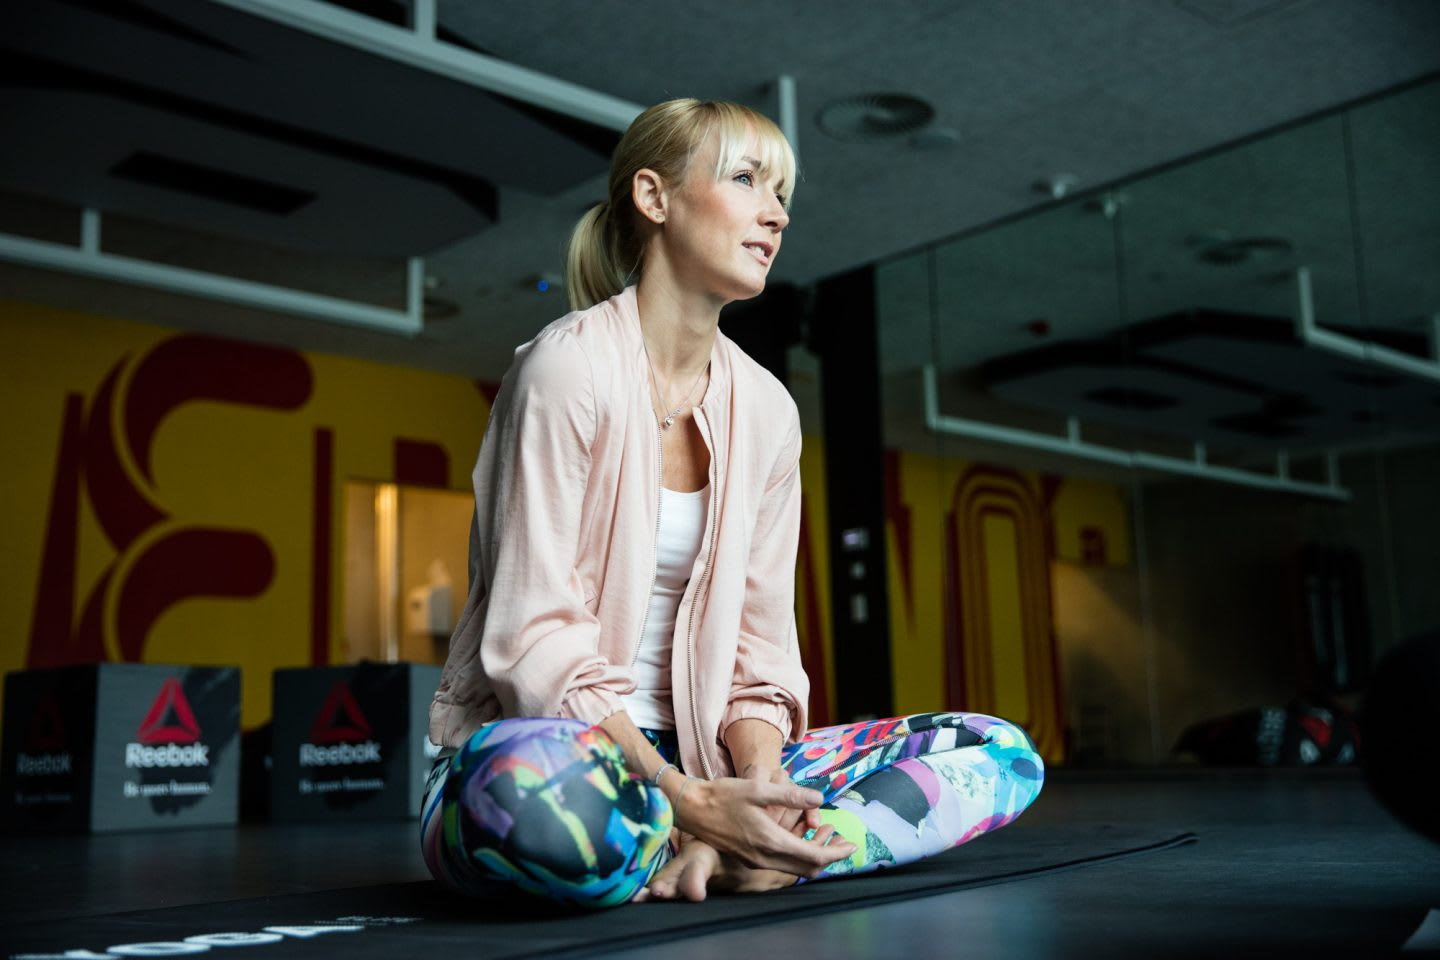 blonde woman sitting on yoga mat in gym Anna Kleb Reebok Entrepreneur Strala Yoga